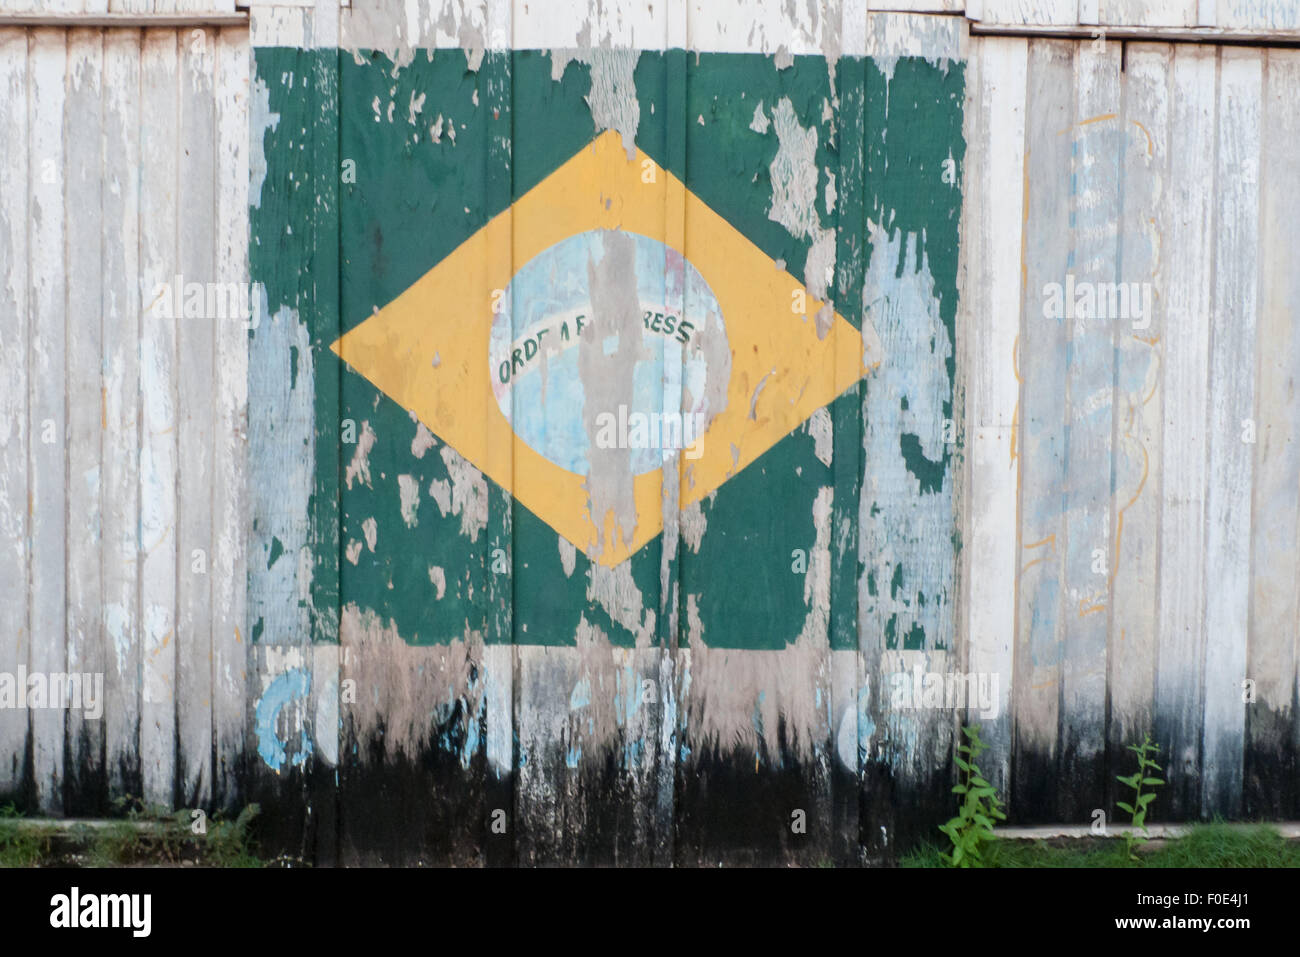 Novo Progresso, Para State, Brazil. Faded painted Brazilian flag on a wooden wall. - Stock Image